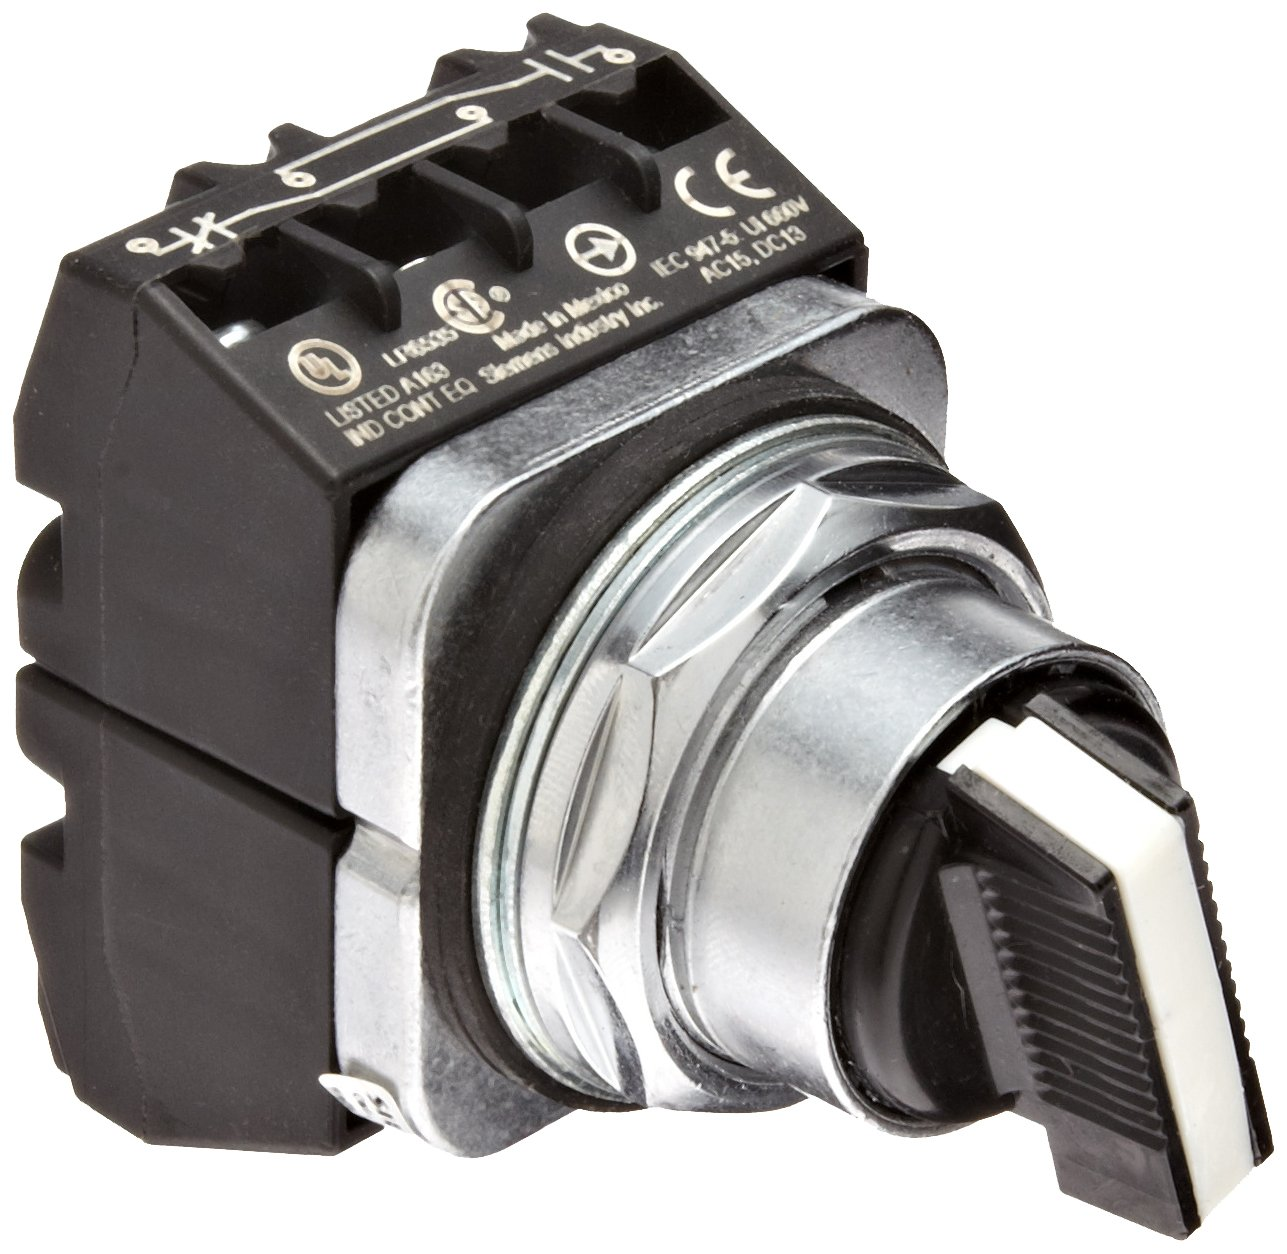 Siemens 52SA2CABA2 Heavy Duty Selector Switch Unit, Water and Oil Tight, 3 Positions, Short Lever, Maintained Operation, C Cam, 2NO + 2NC Contact Blocks